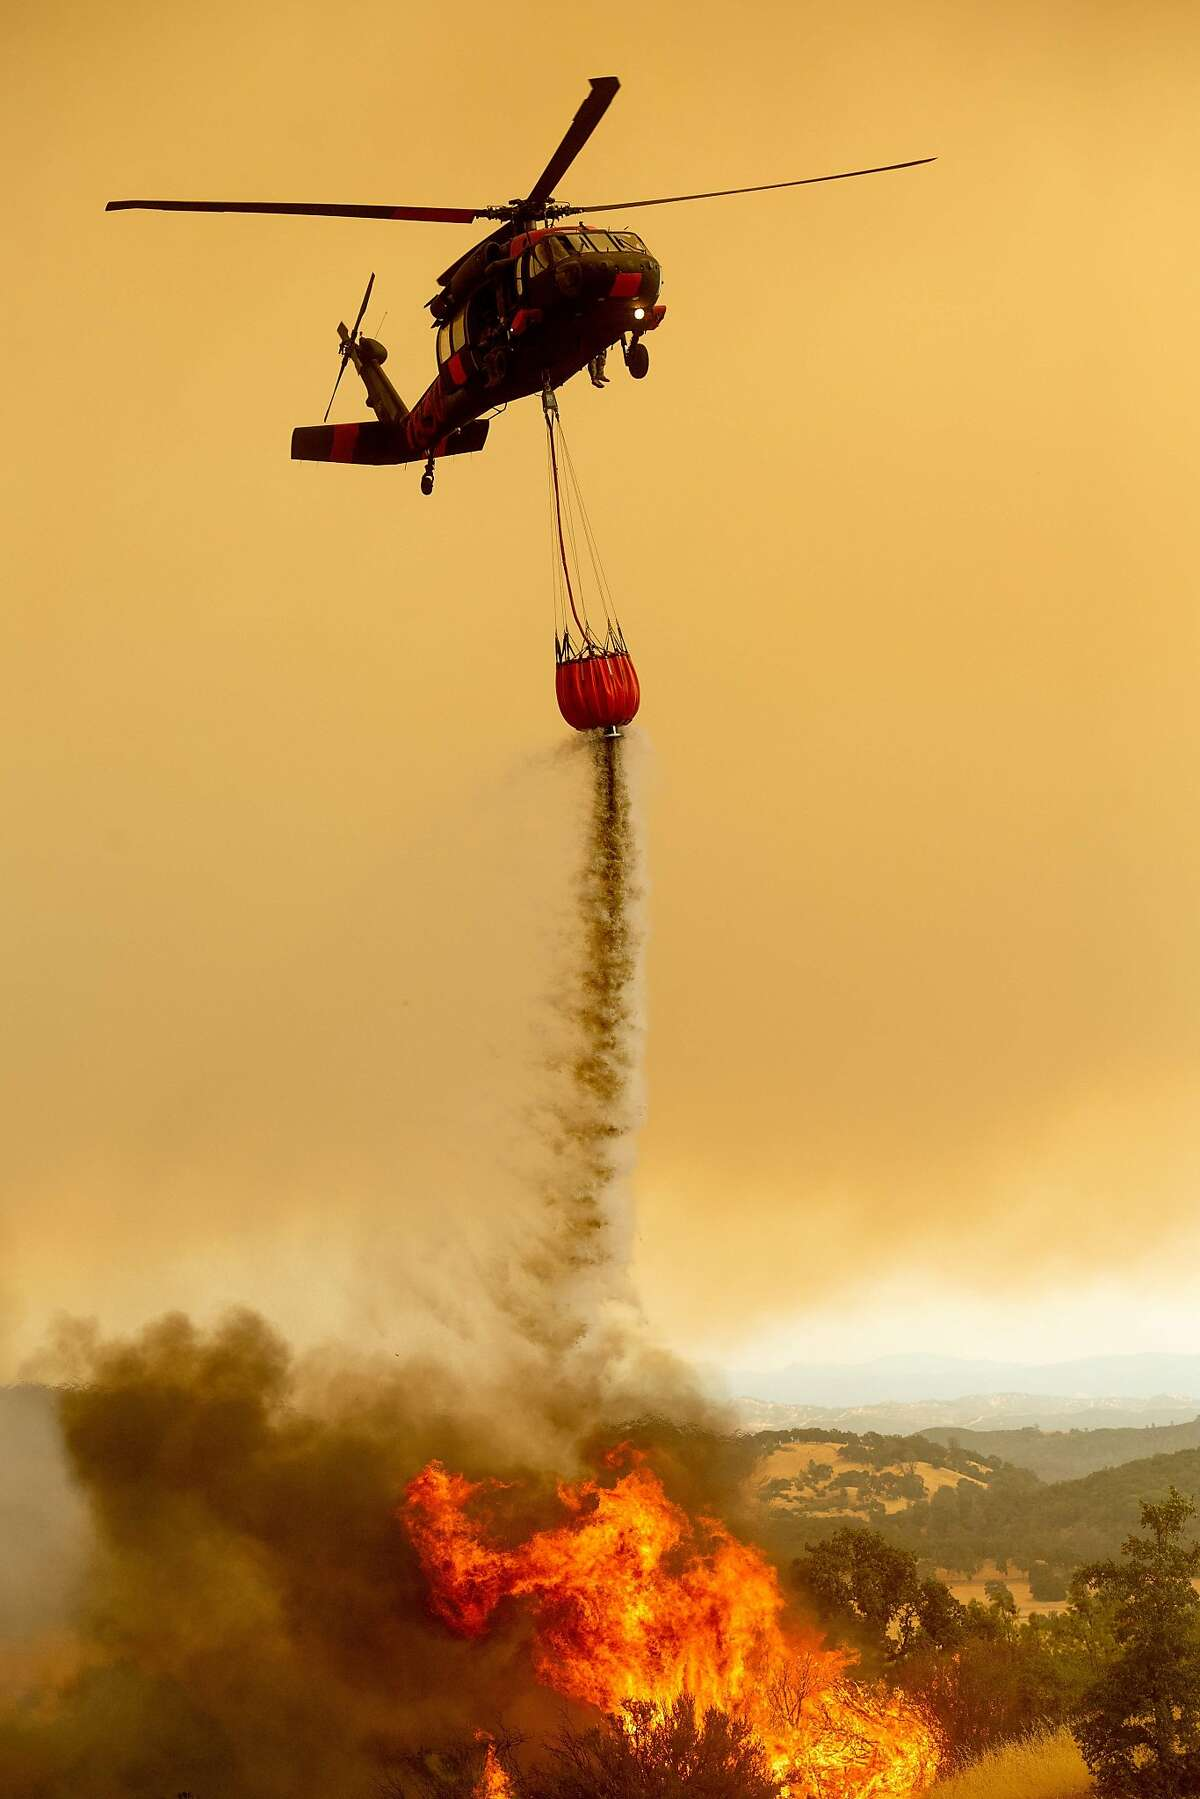 A helicopter drops water on the Ranch Fire, part of the Mendocino Complex Fire, burning on High Valley Rd. near Clearlake Oaks, California, on Sunday, Aug. 5, 2018. / AFP PHOTO / NOAH BERGERNOAH BERGER/AFP/Getty Images